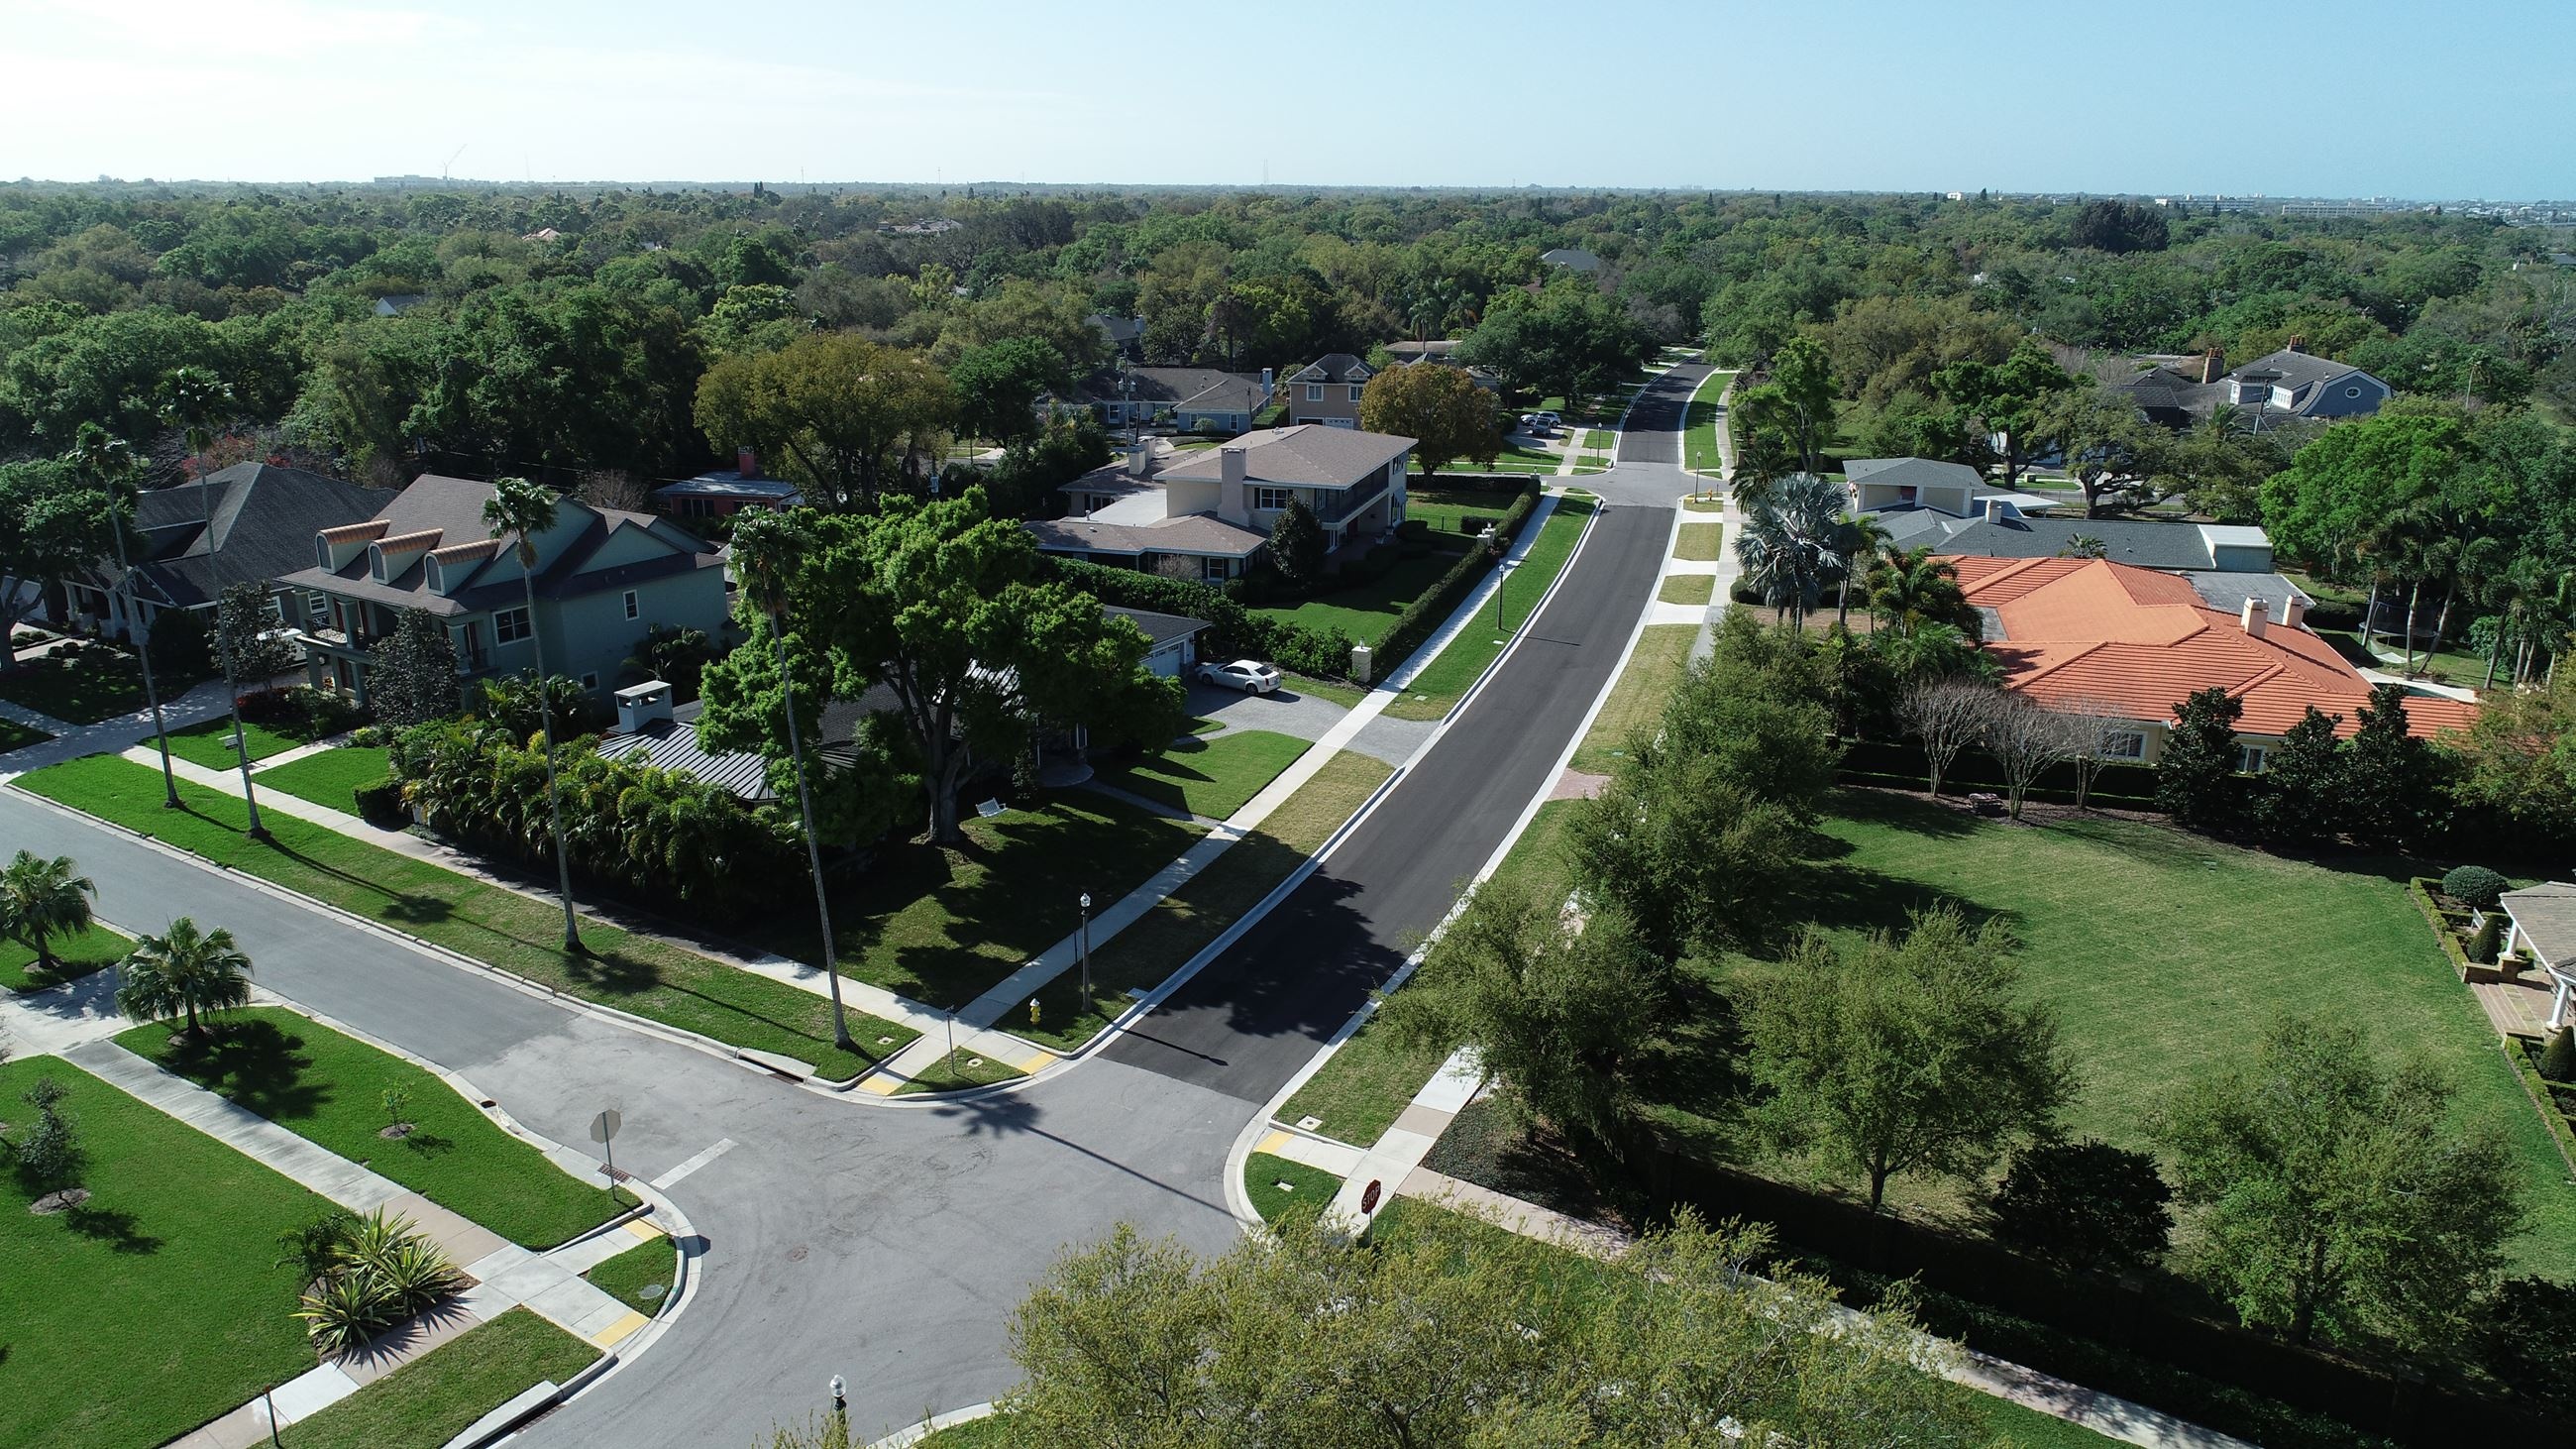 An aerial view of the completed Palmetto Road features the smooth resurfacing through the neighborho